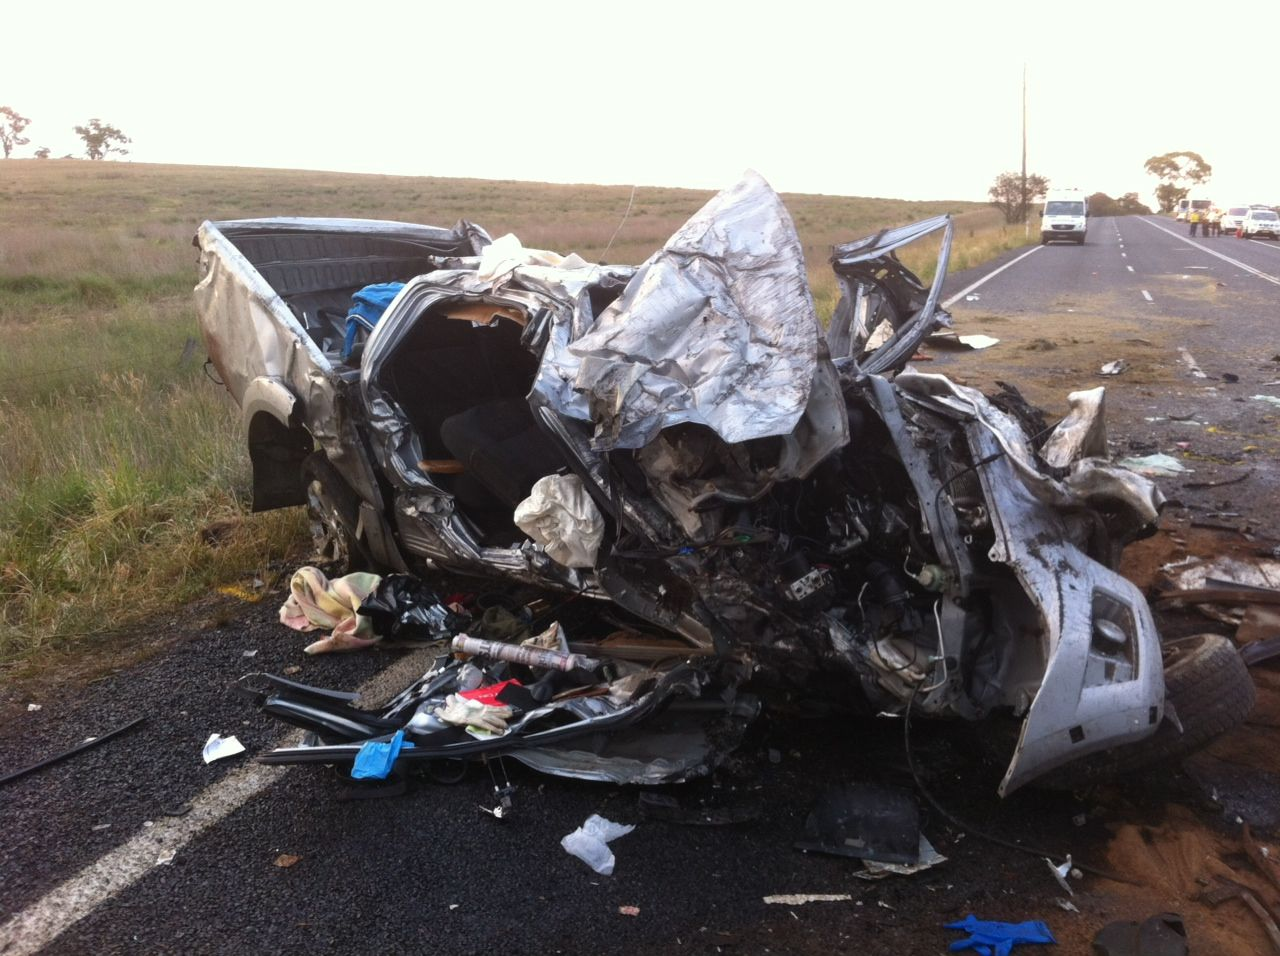 Pin On Crash Lets Be Careful Out There